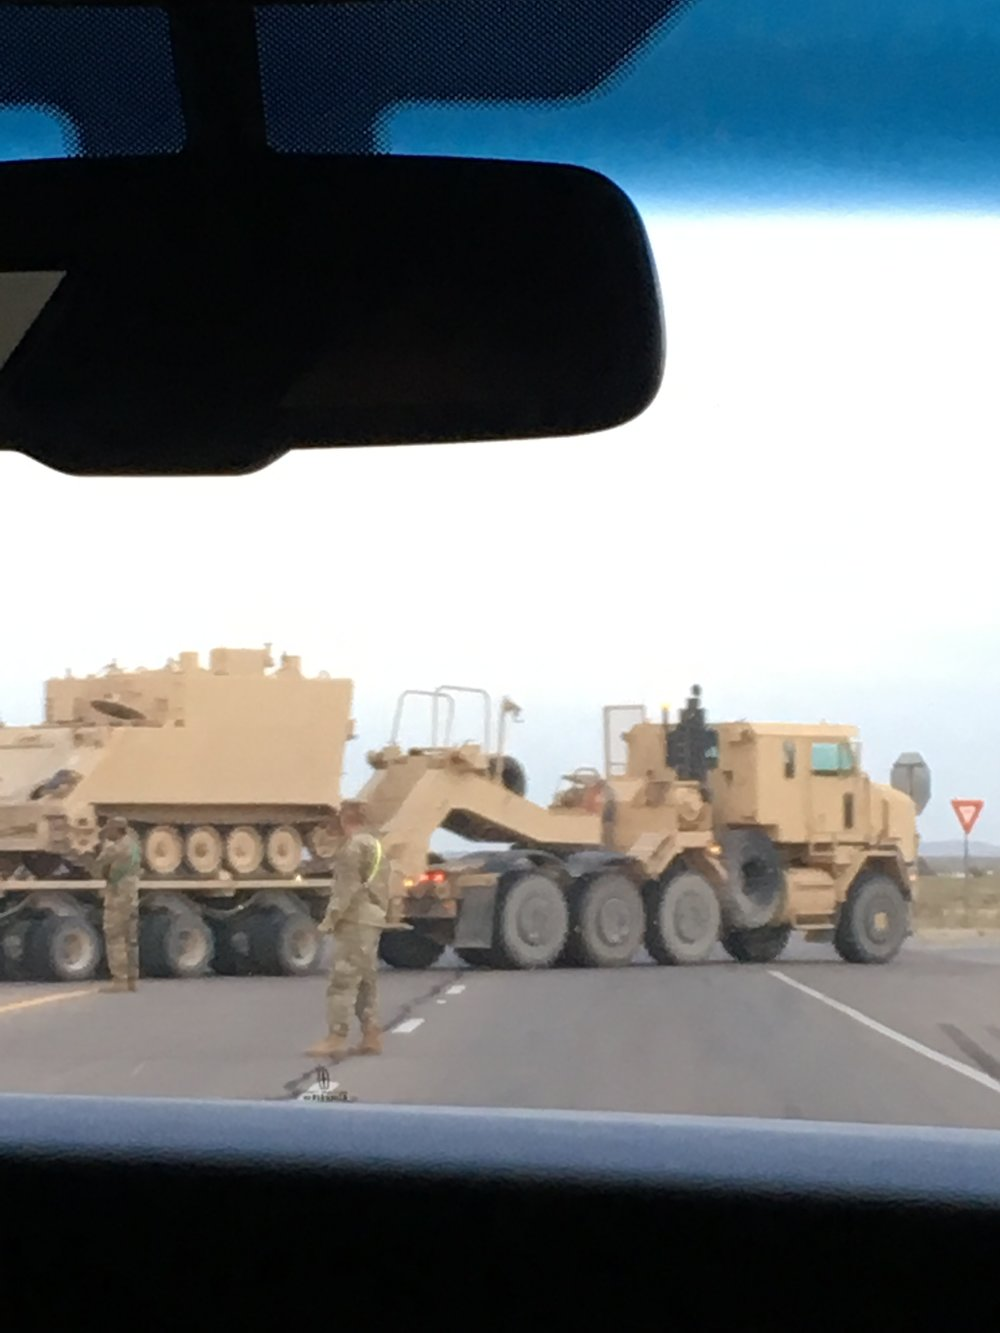 Stopped on Route 54 to allow a military convoy to cross the highway